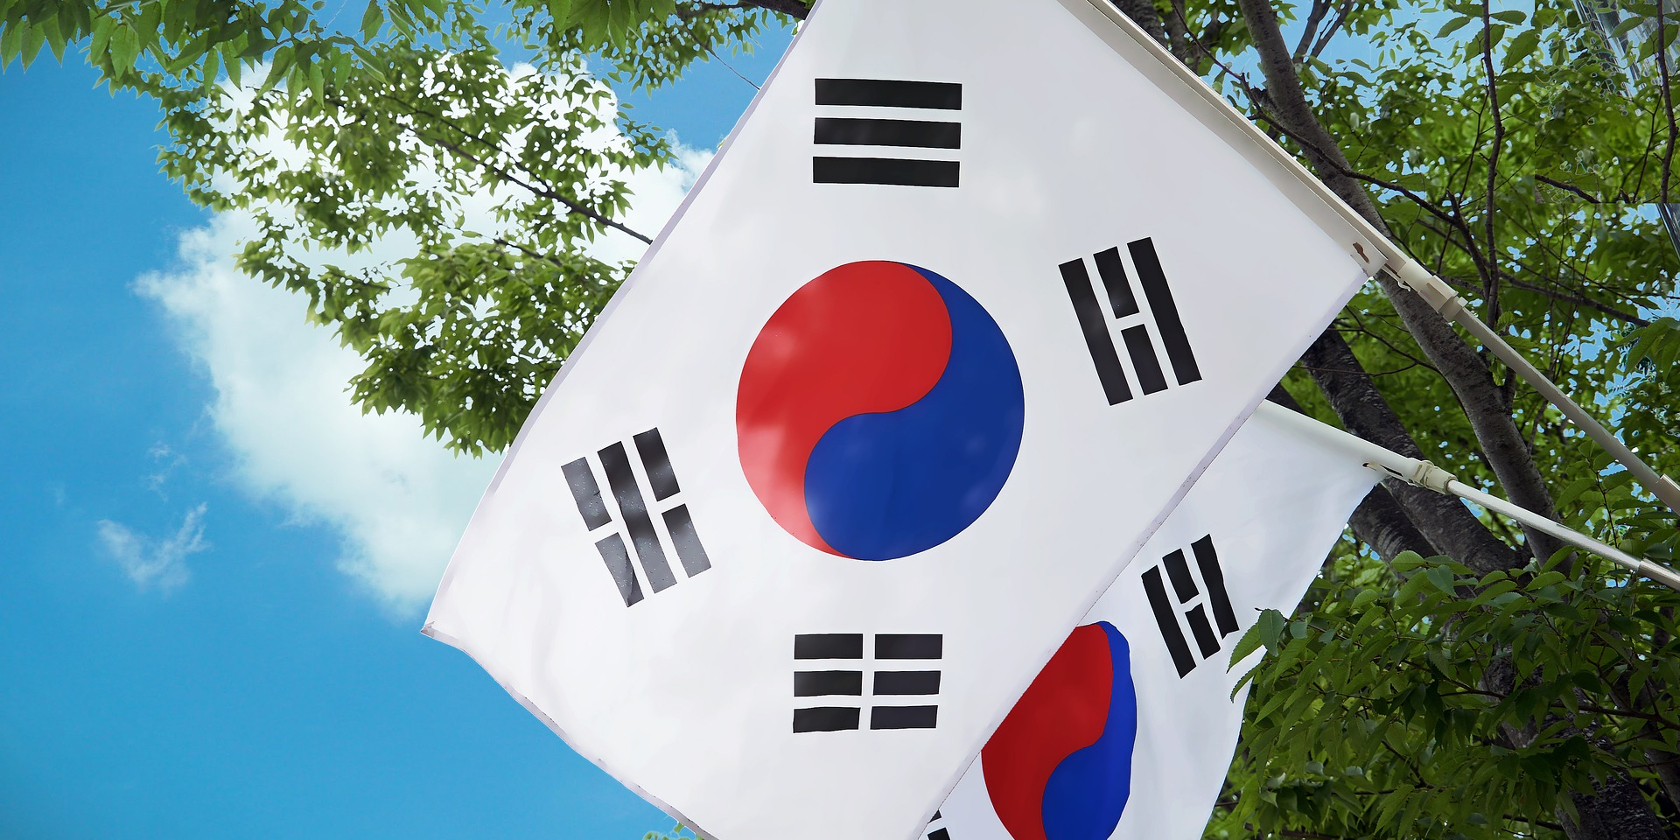 Toray Plans Major Carbon Fiber, PPS Investments for South Korea by 2020